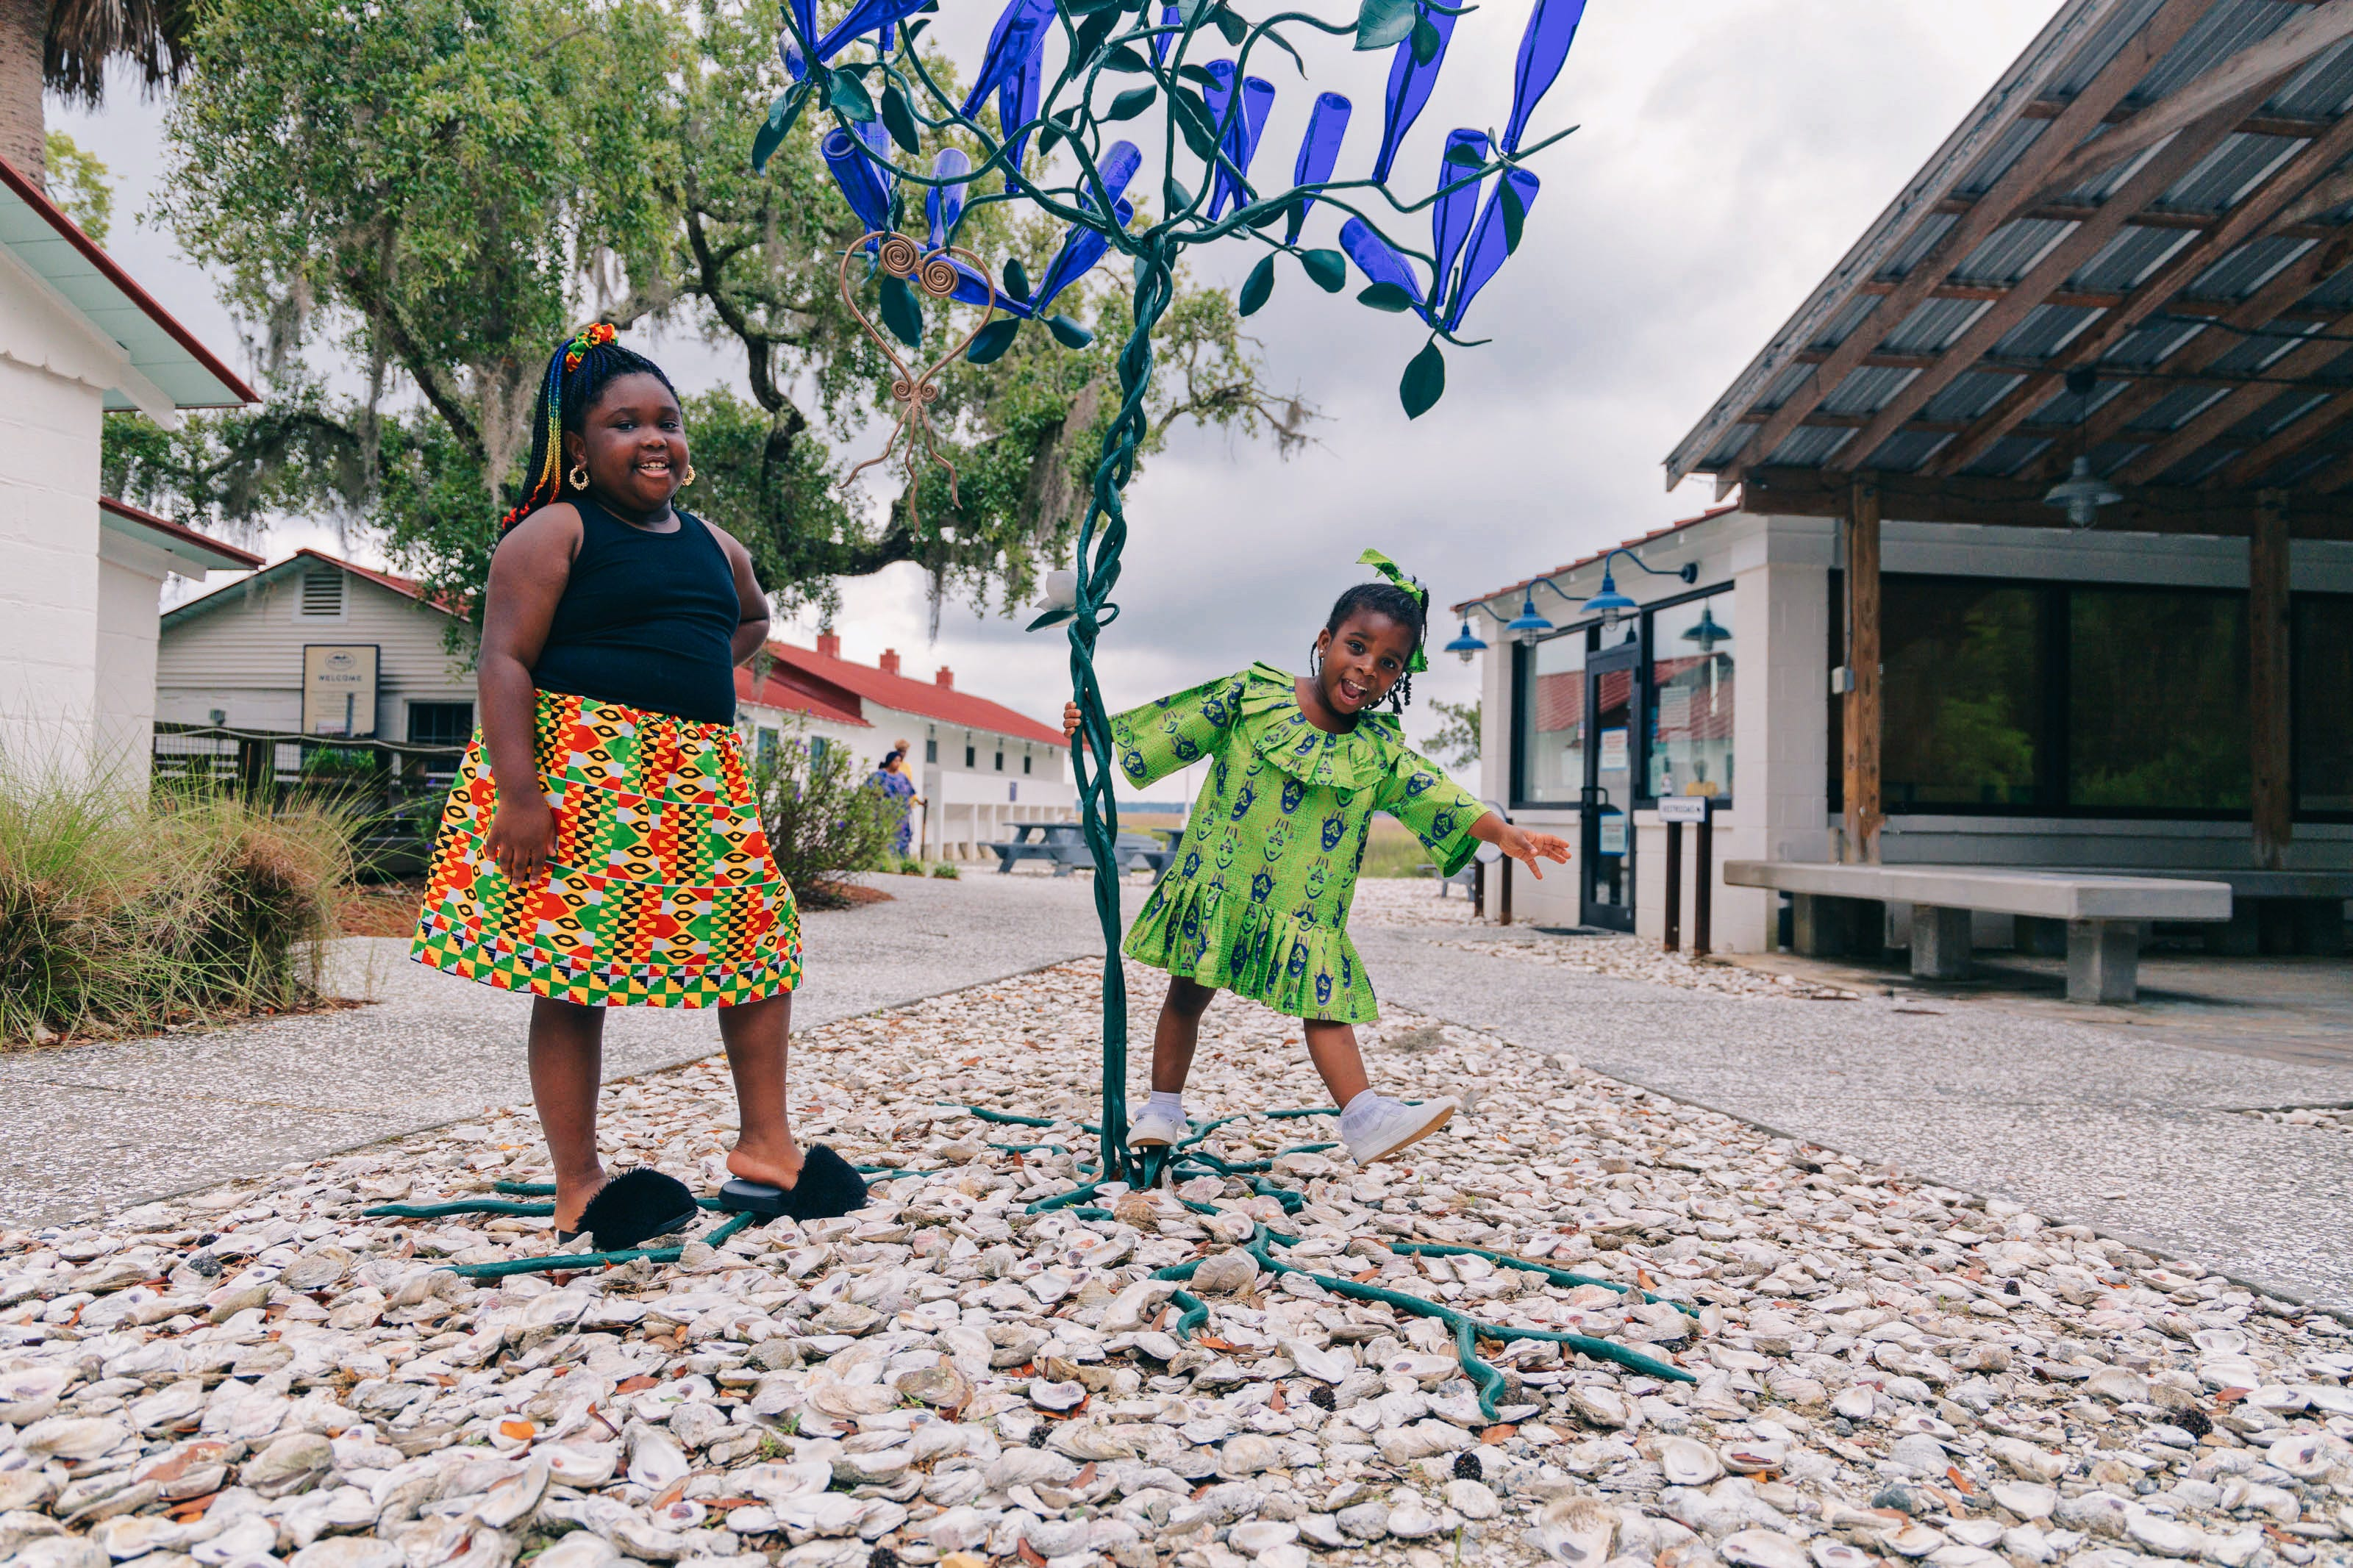 Lemeirah Rouse and Noelle Mugin at Pin Point Heritage Museum in Savannah. The museum, located in the old A.S. Varn & Son Oyster and Crab Factory, allows guests to experience the Gullah/Geechee culture first hand.